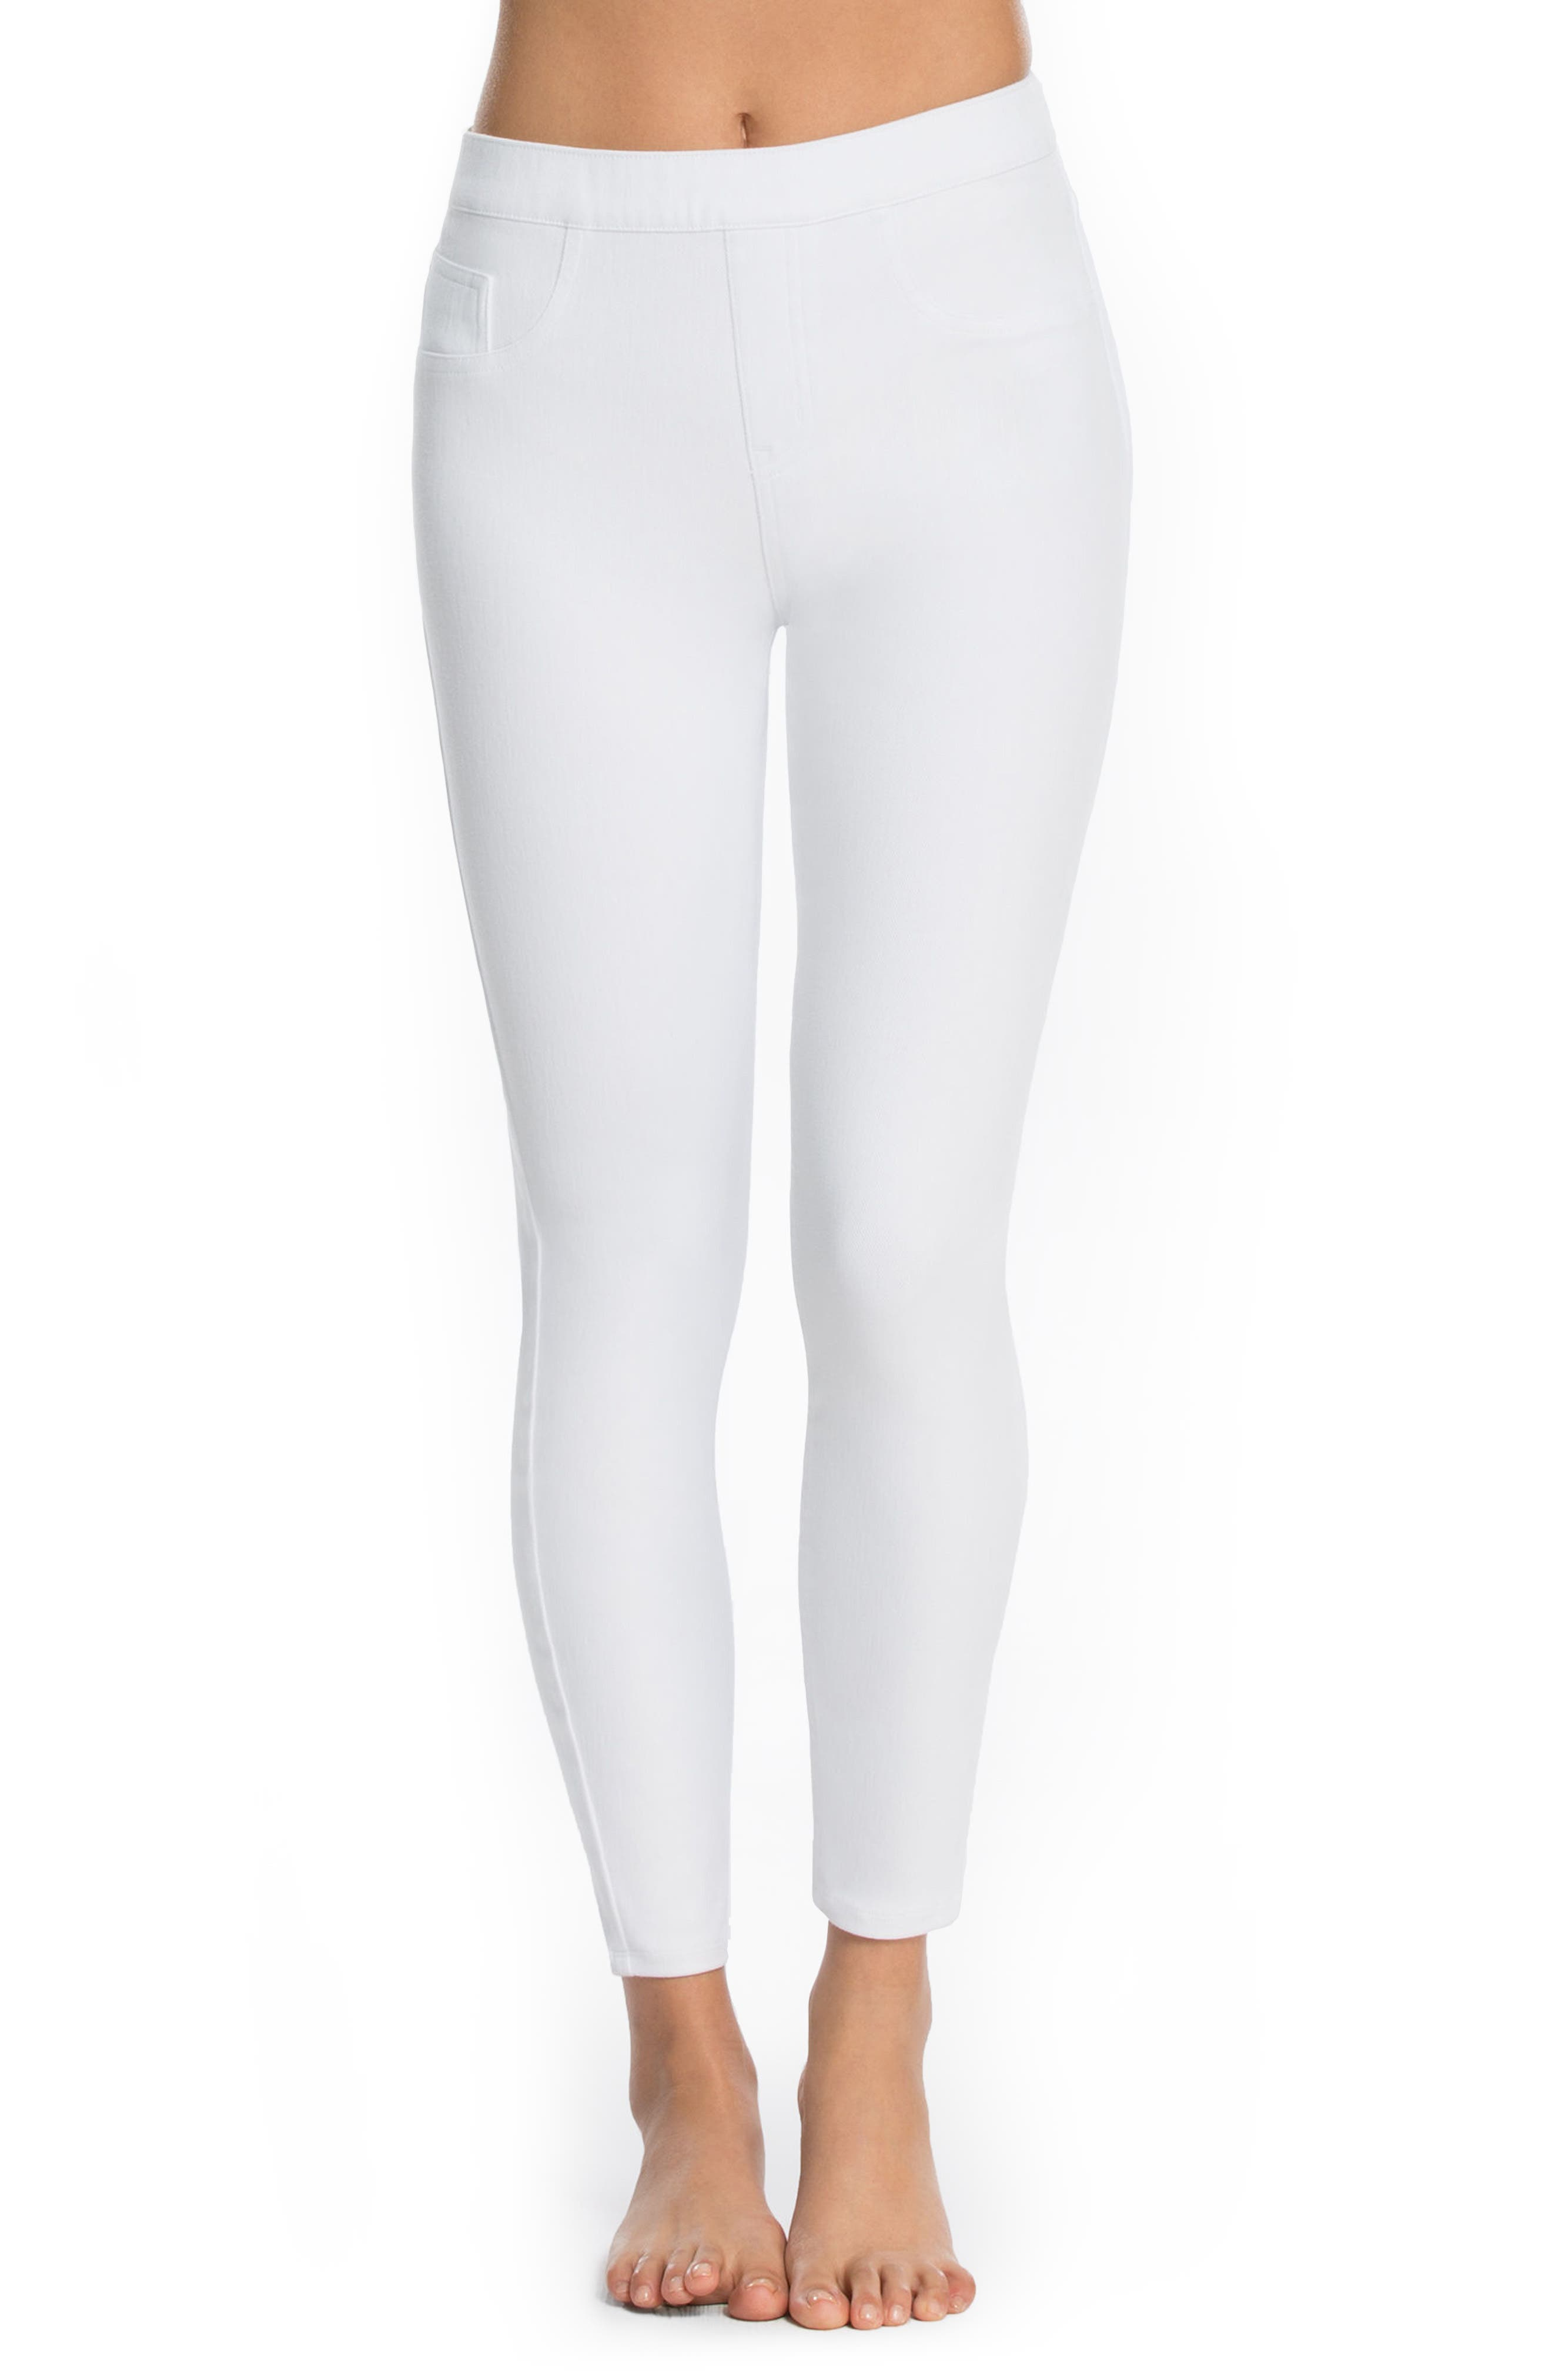 The power of SPANX shapers teams up with the look of skinny jeans in these leggings crafted with a comfy elastic waist, flattering back pockets and hems that hit right at the ankles. Style Name: Spanx Jean-Ish Leggings. Style Number: 5090147. Available in stores.